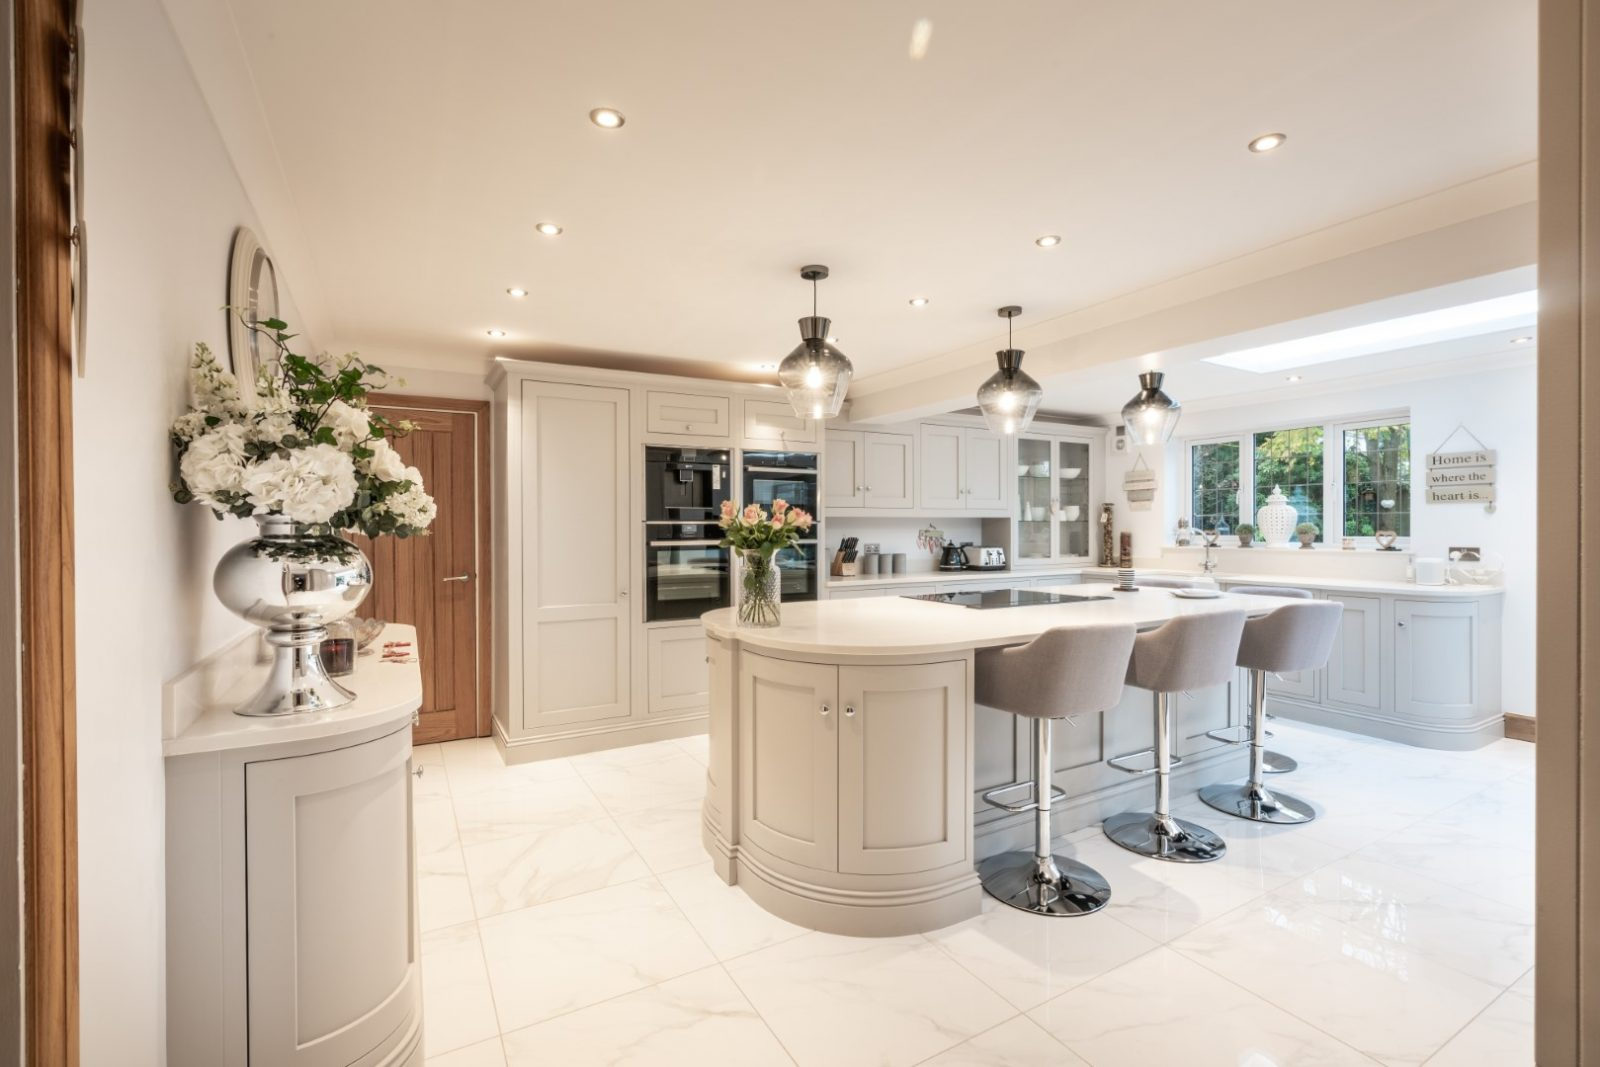 Kitchen of the week… Located in Sidcup, Kent showcasing the Paris Grey Carrera